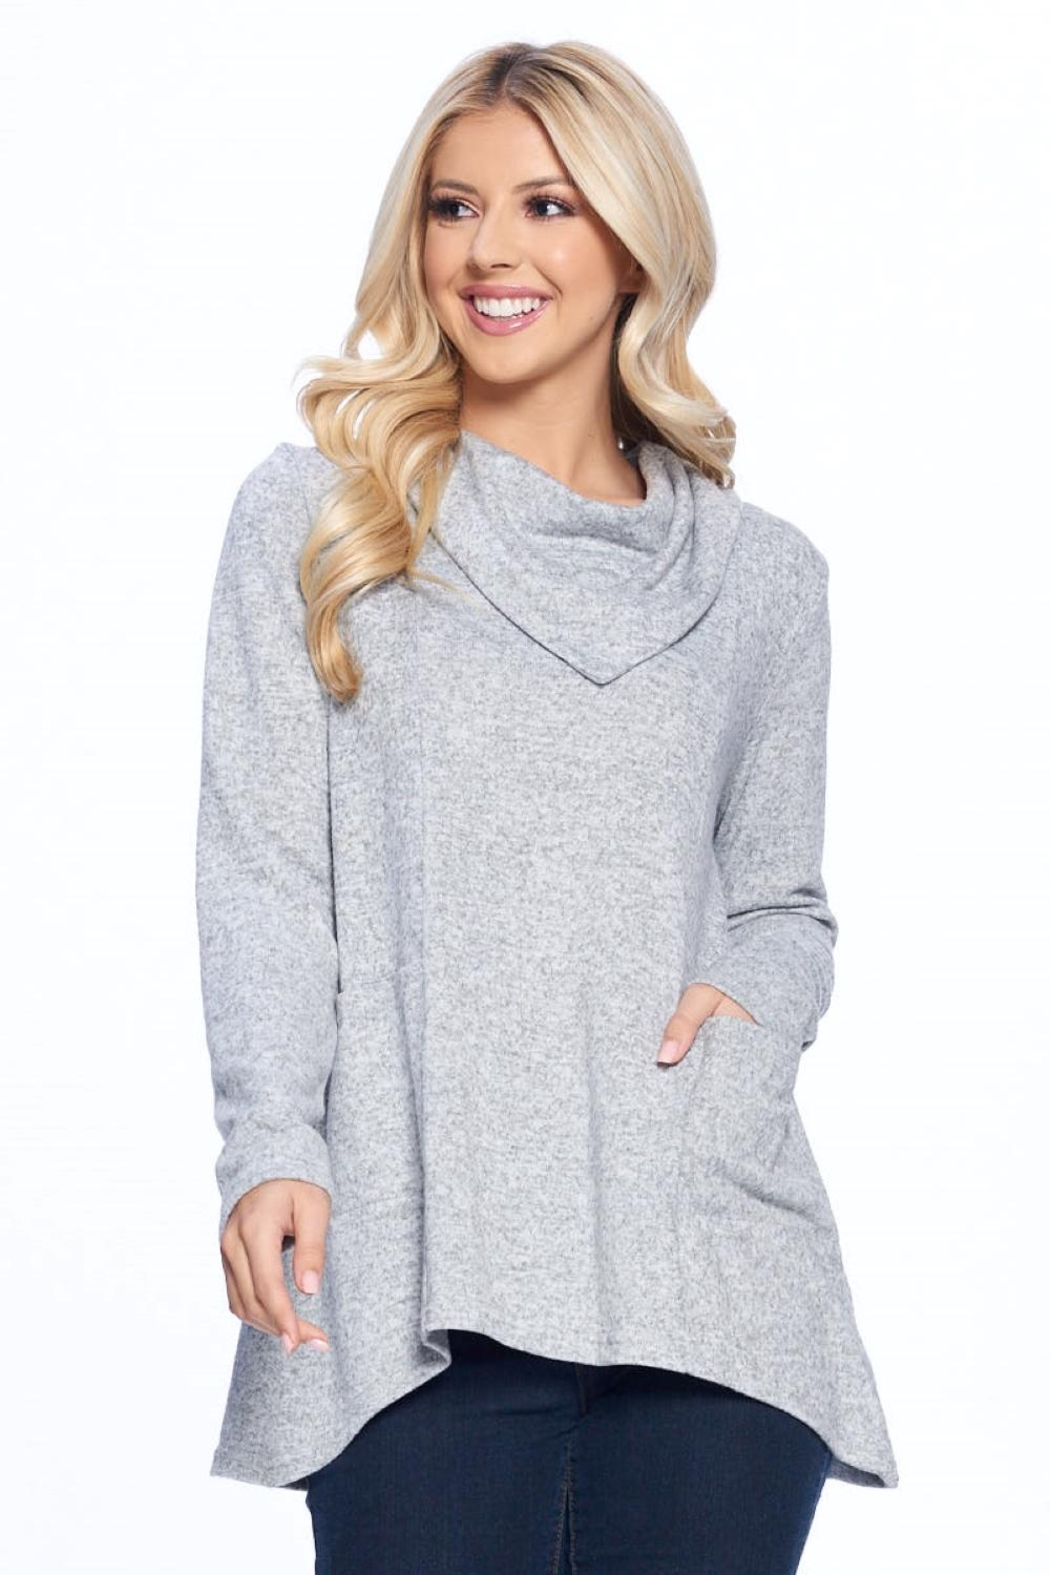 Aryeh Gray Cowl Neck Knit Top - Main Image